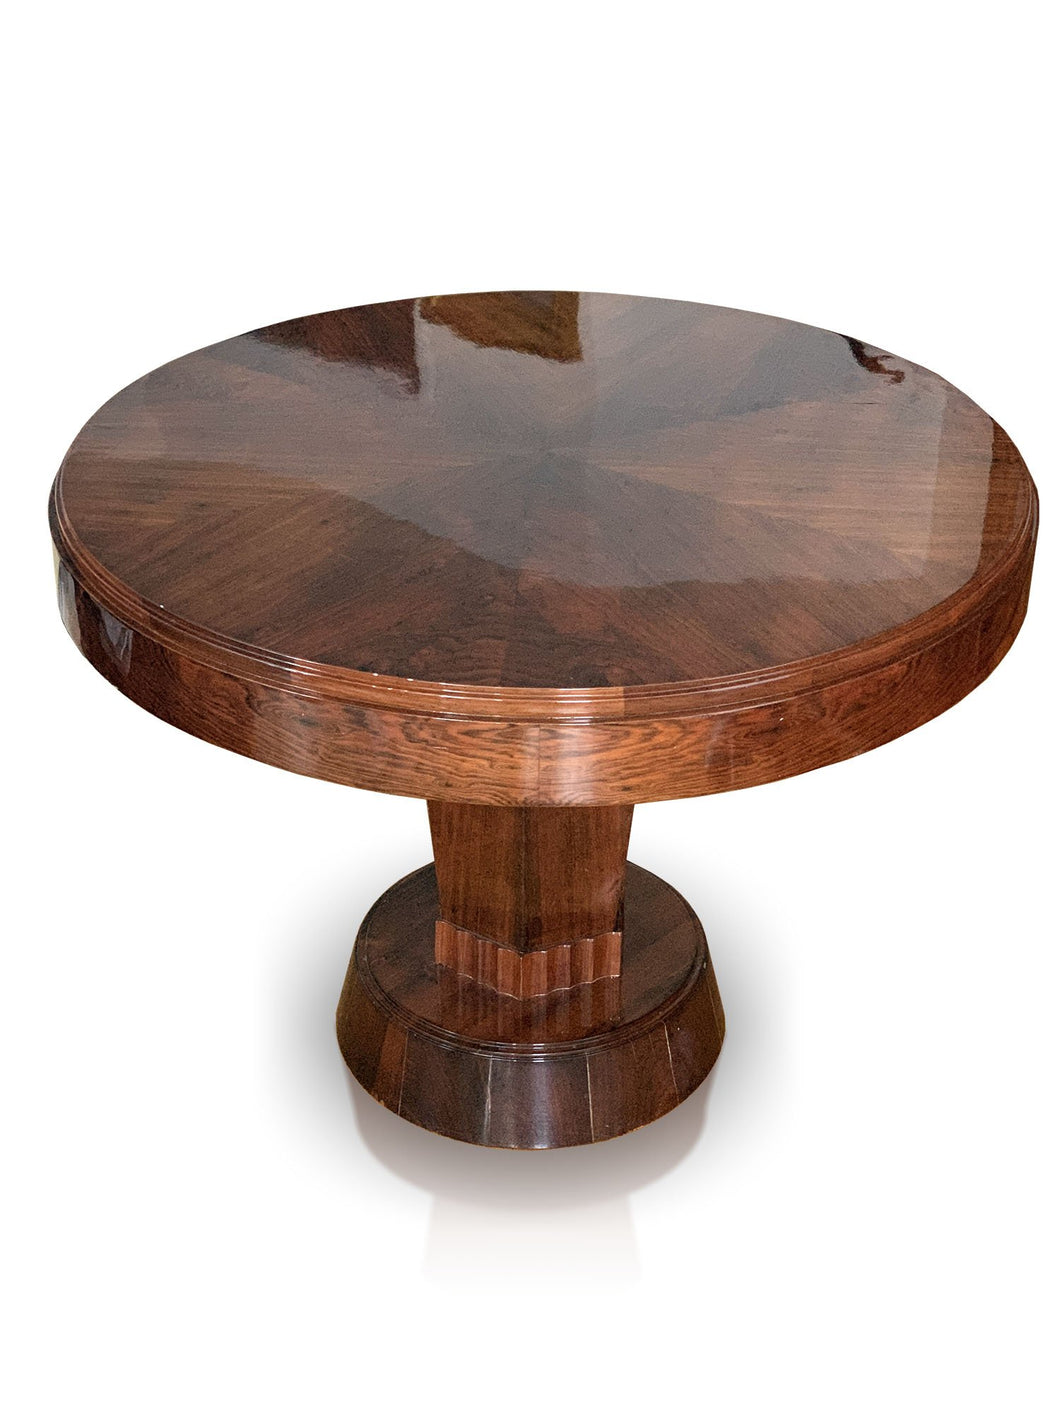 Table Basse | Table portefeuille ART-DECO en placage de ronce de noyer